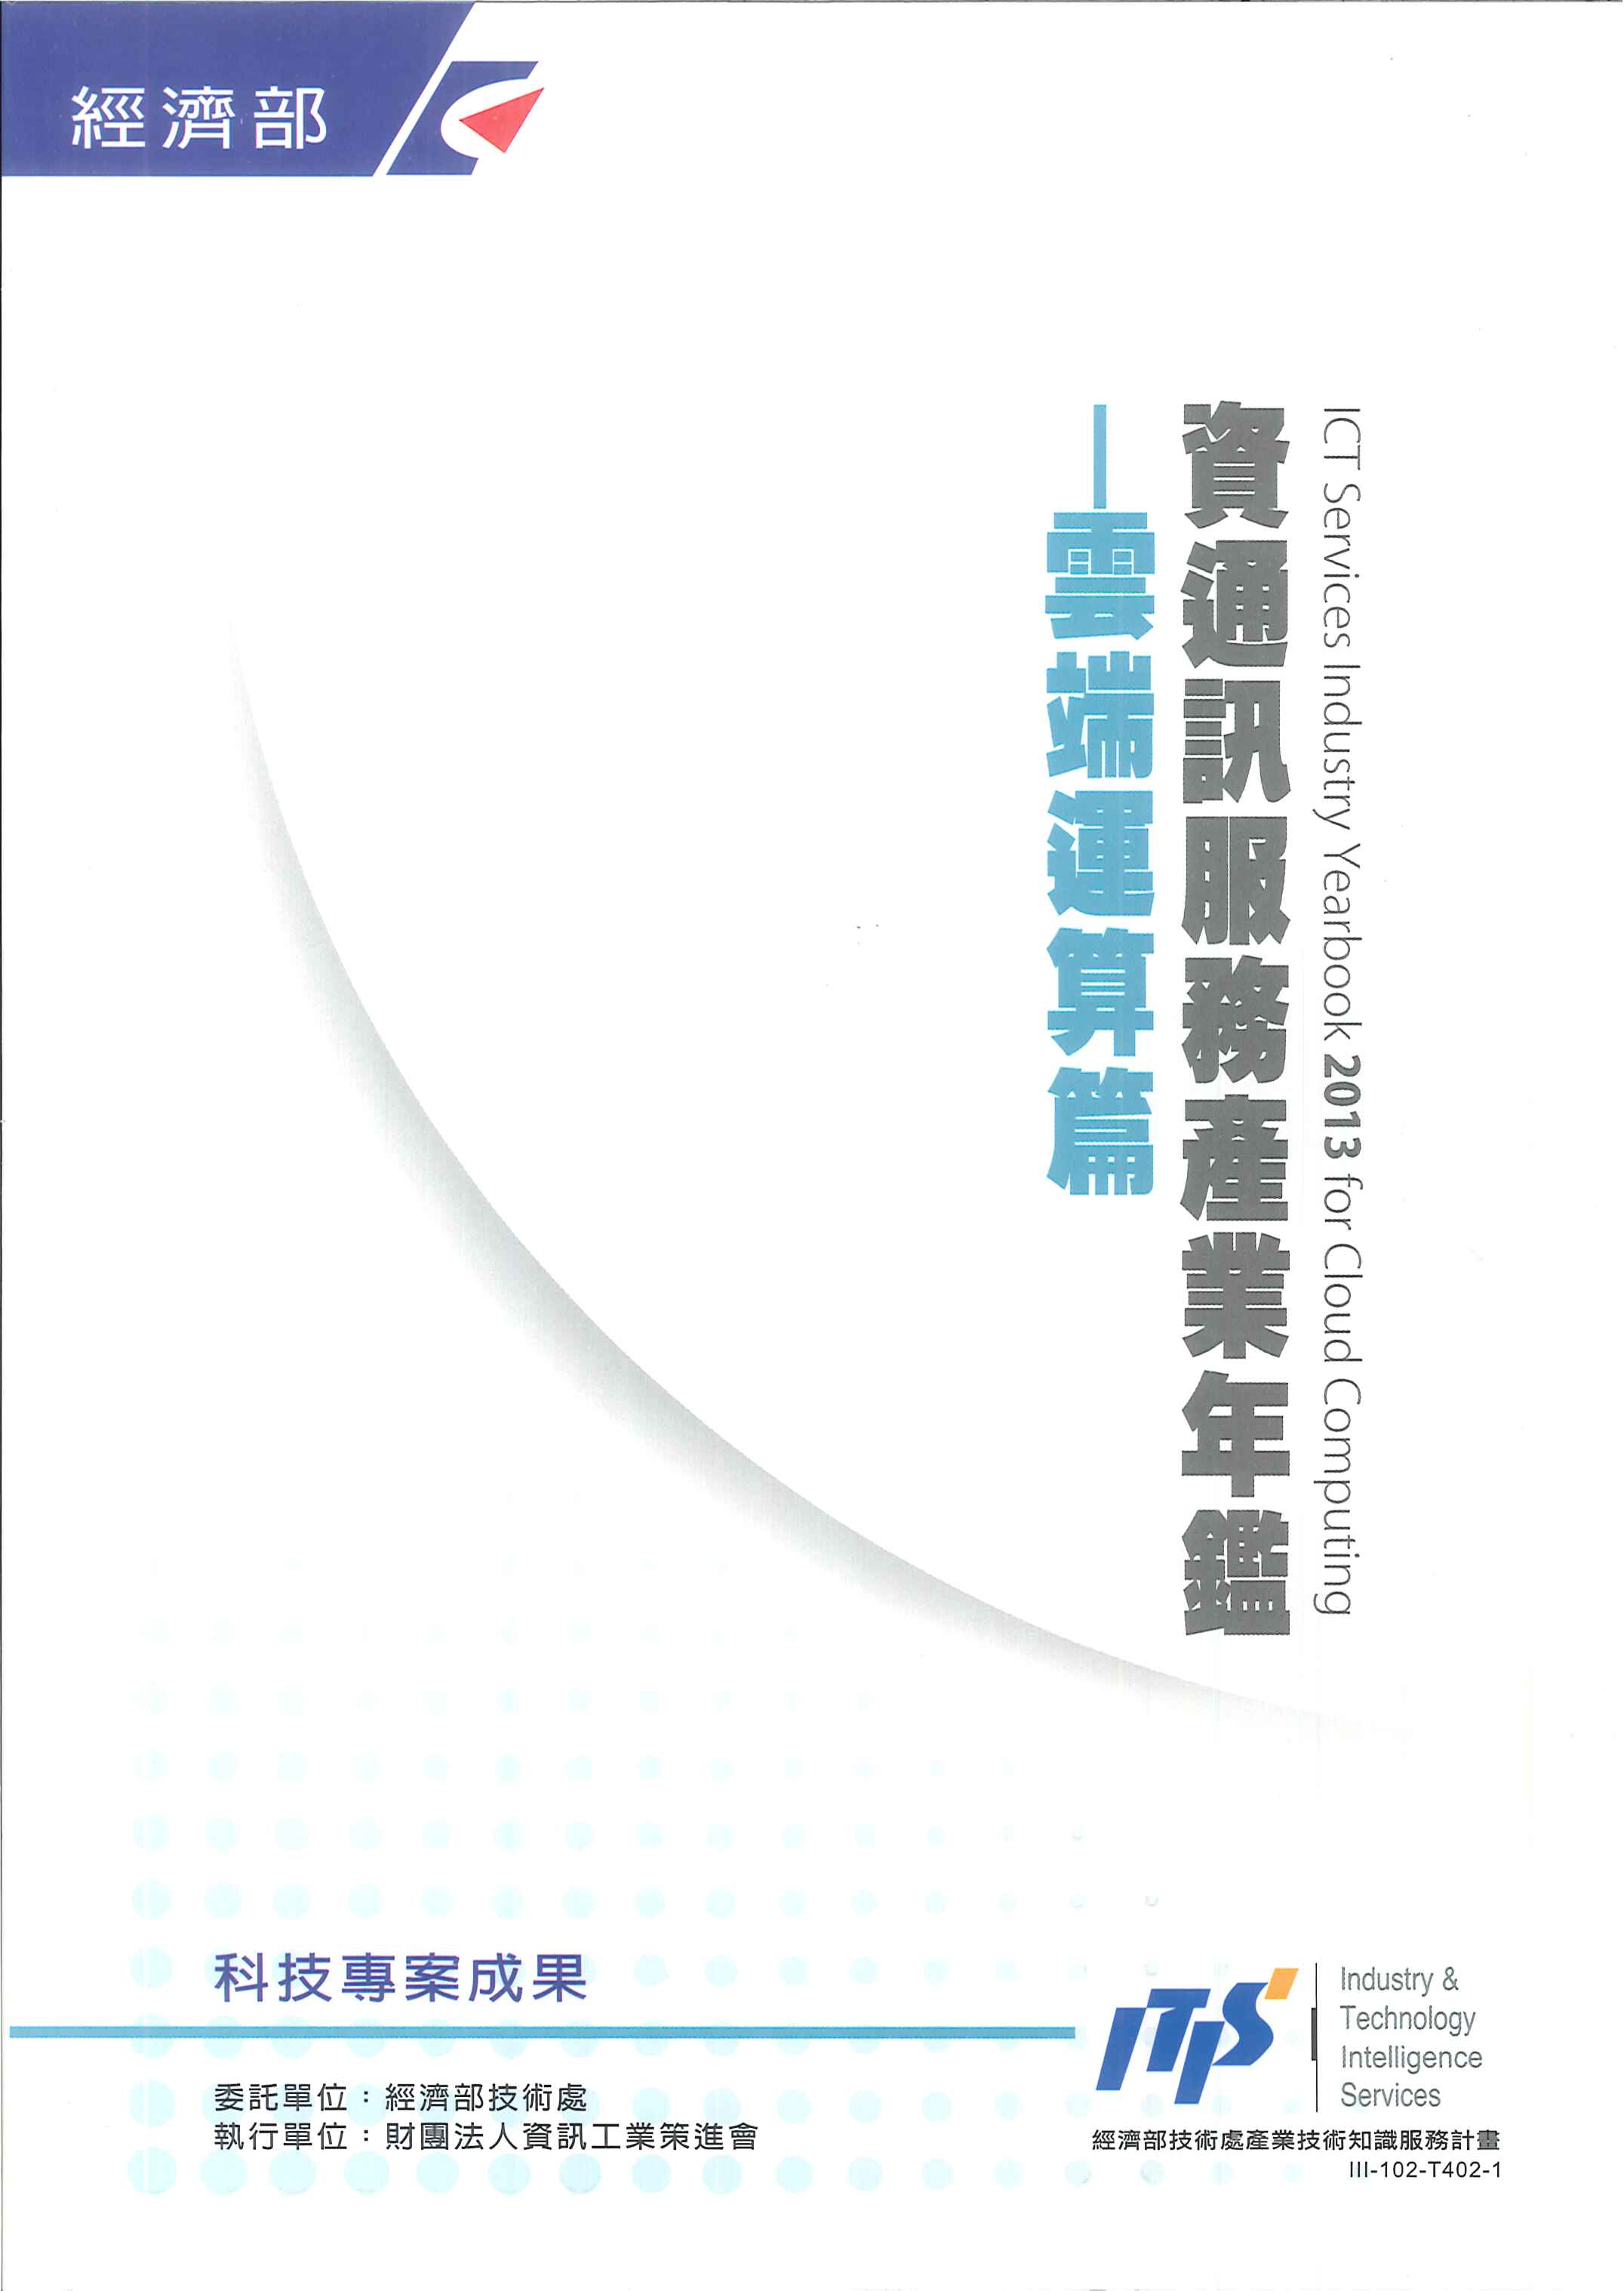 資通訊服務產業年鑑.2013=ICT services industry yearbook